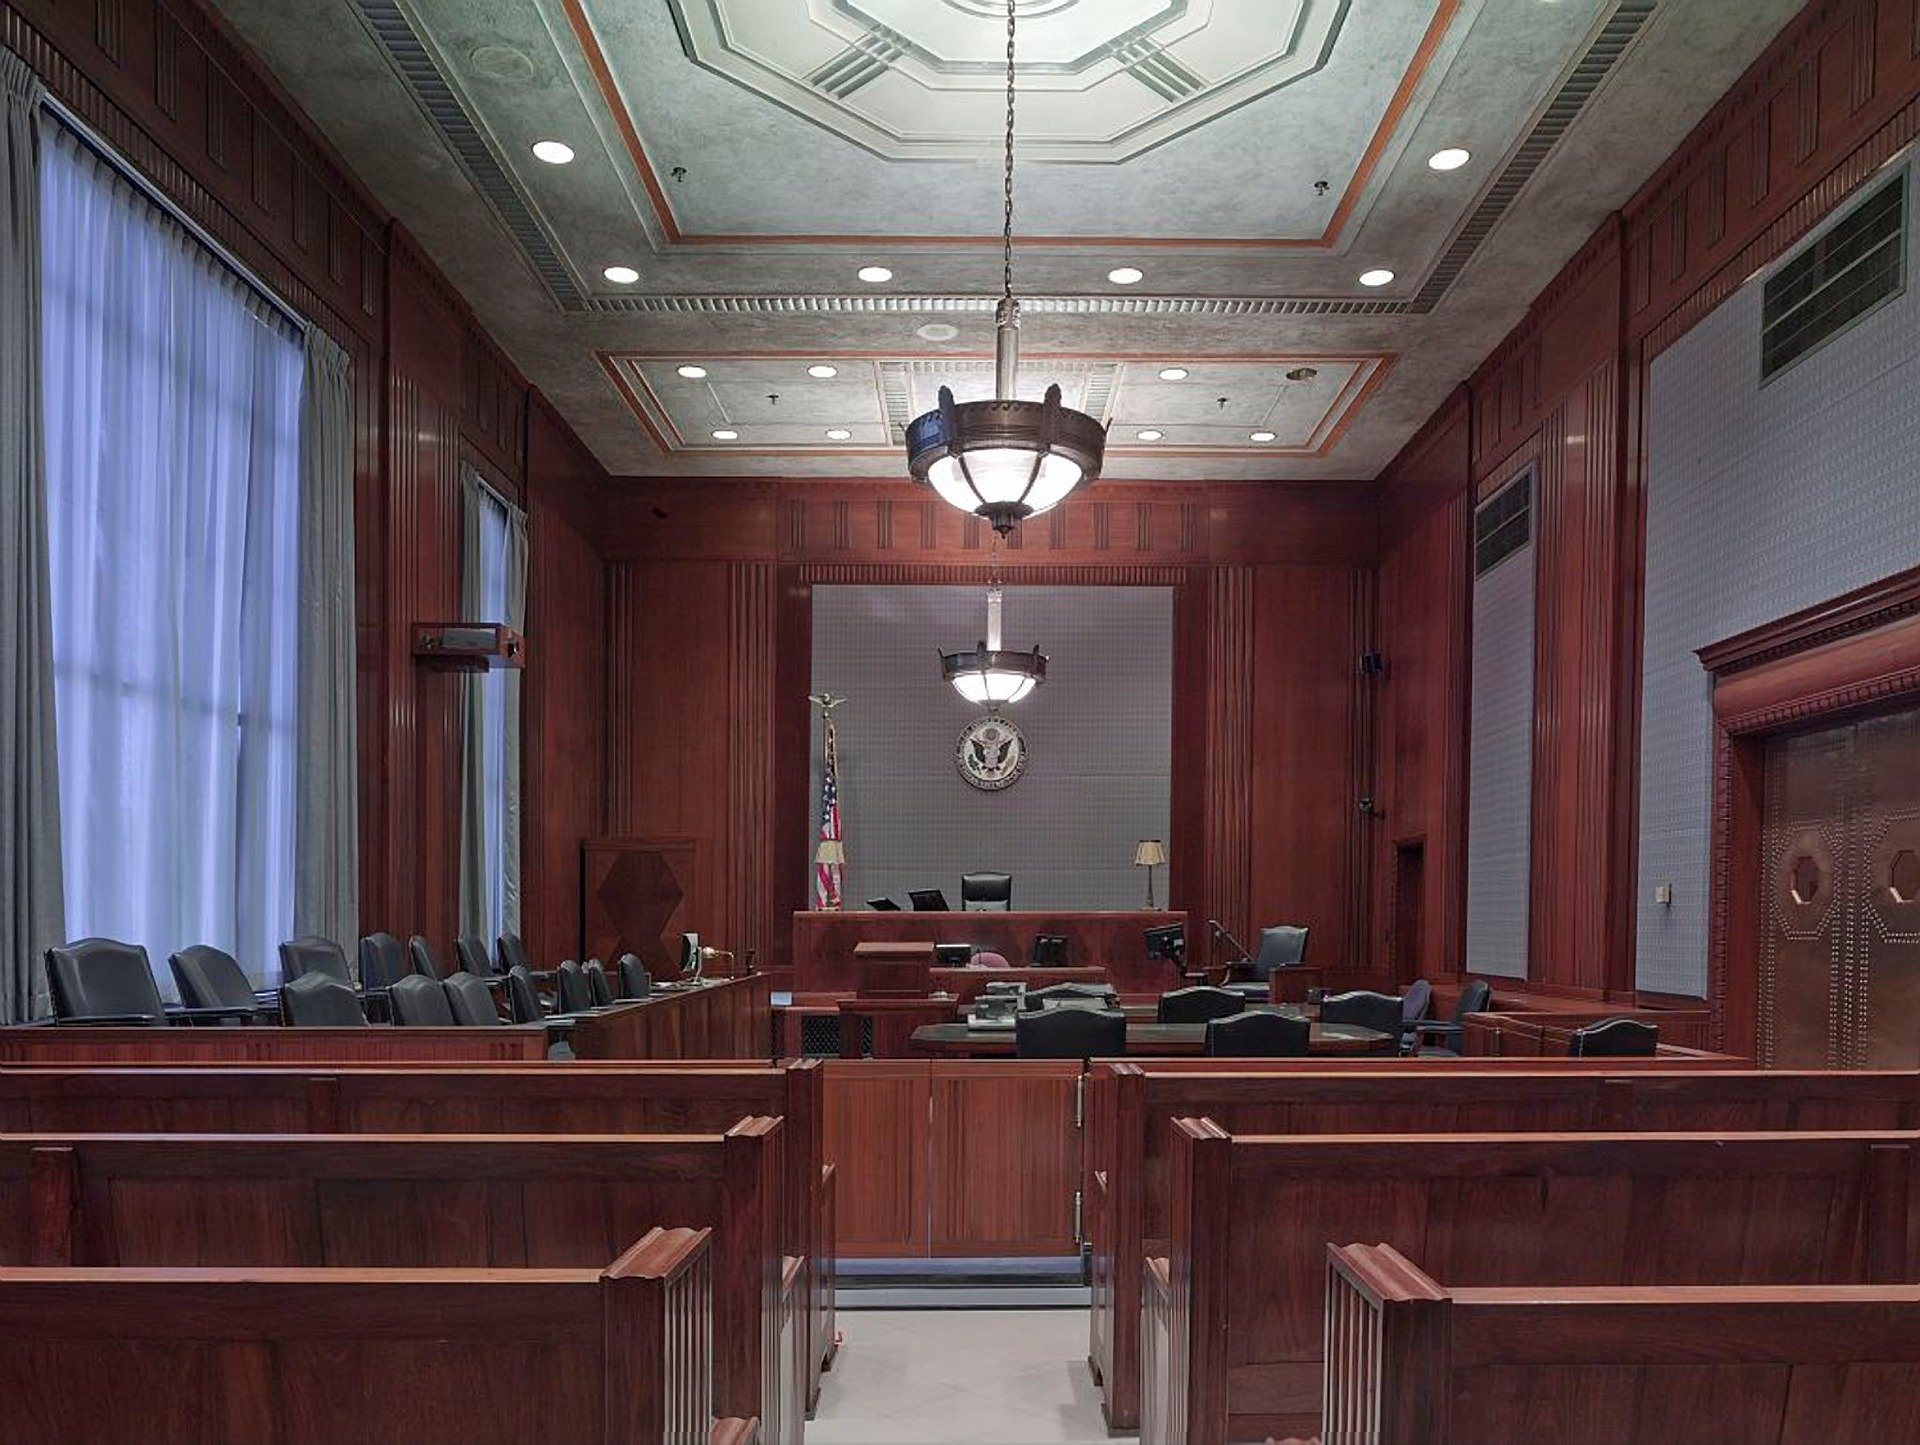 Anita Hill Hearing: Do Infrared Heater Need in a Courtroom?